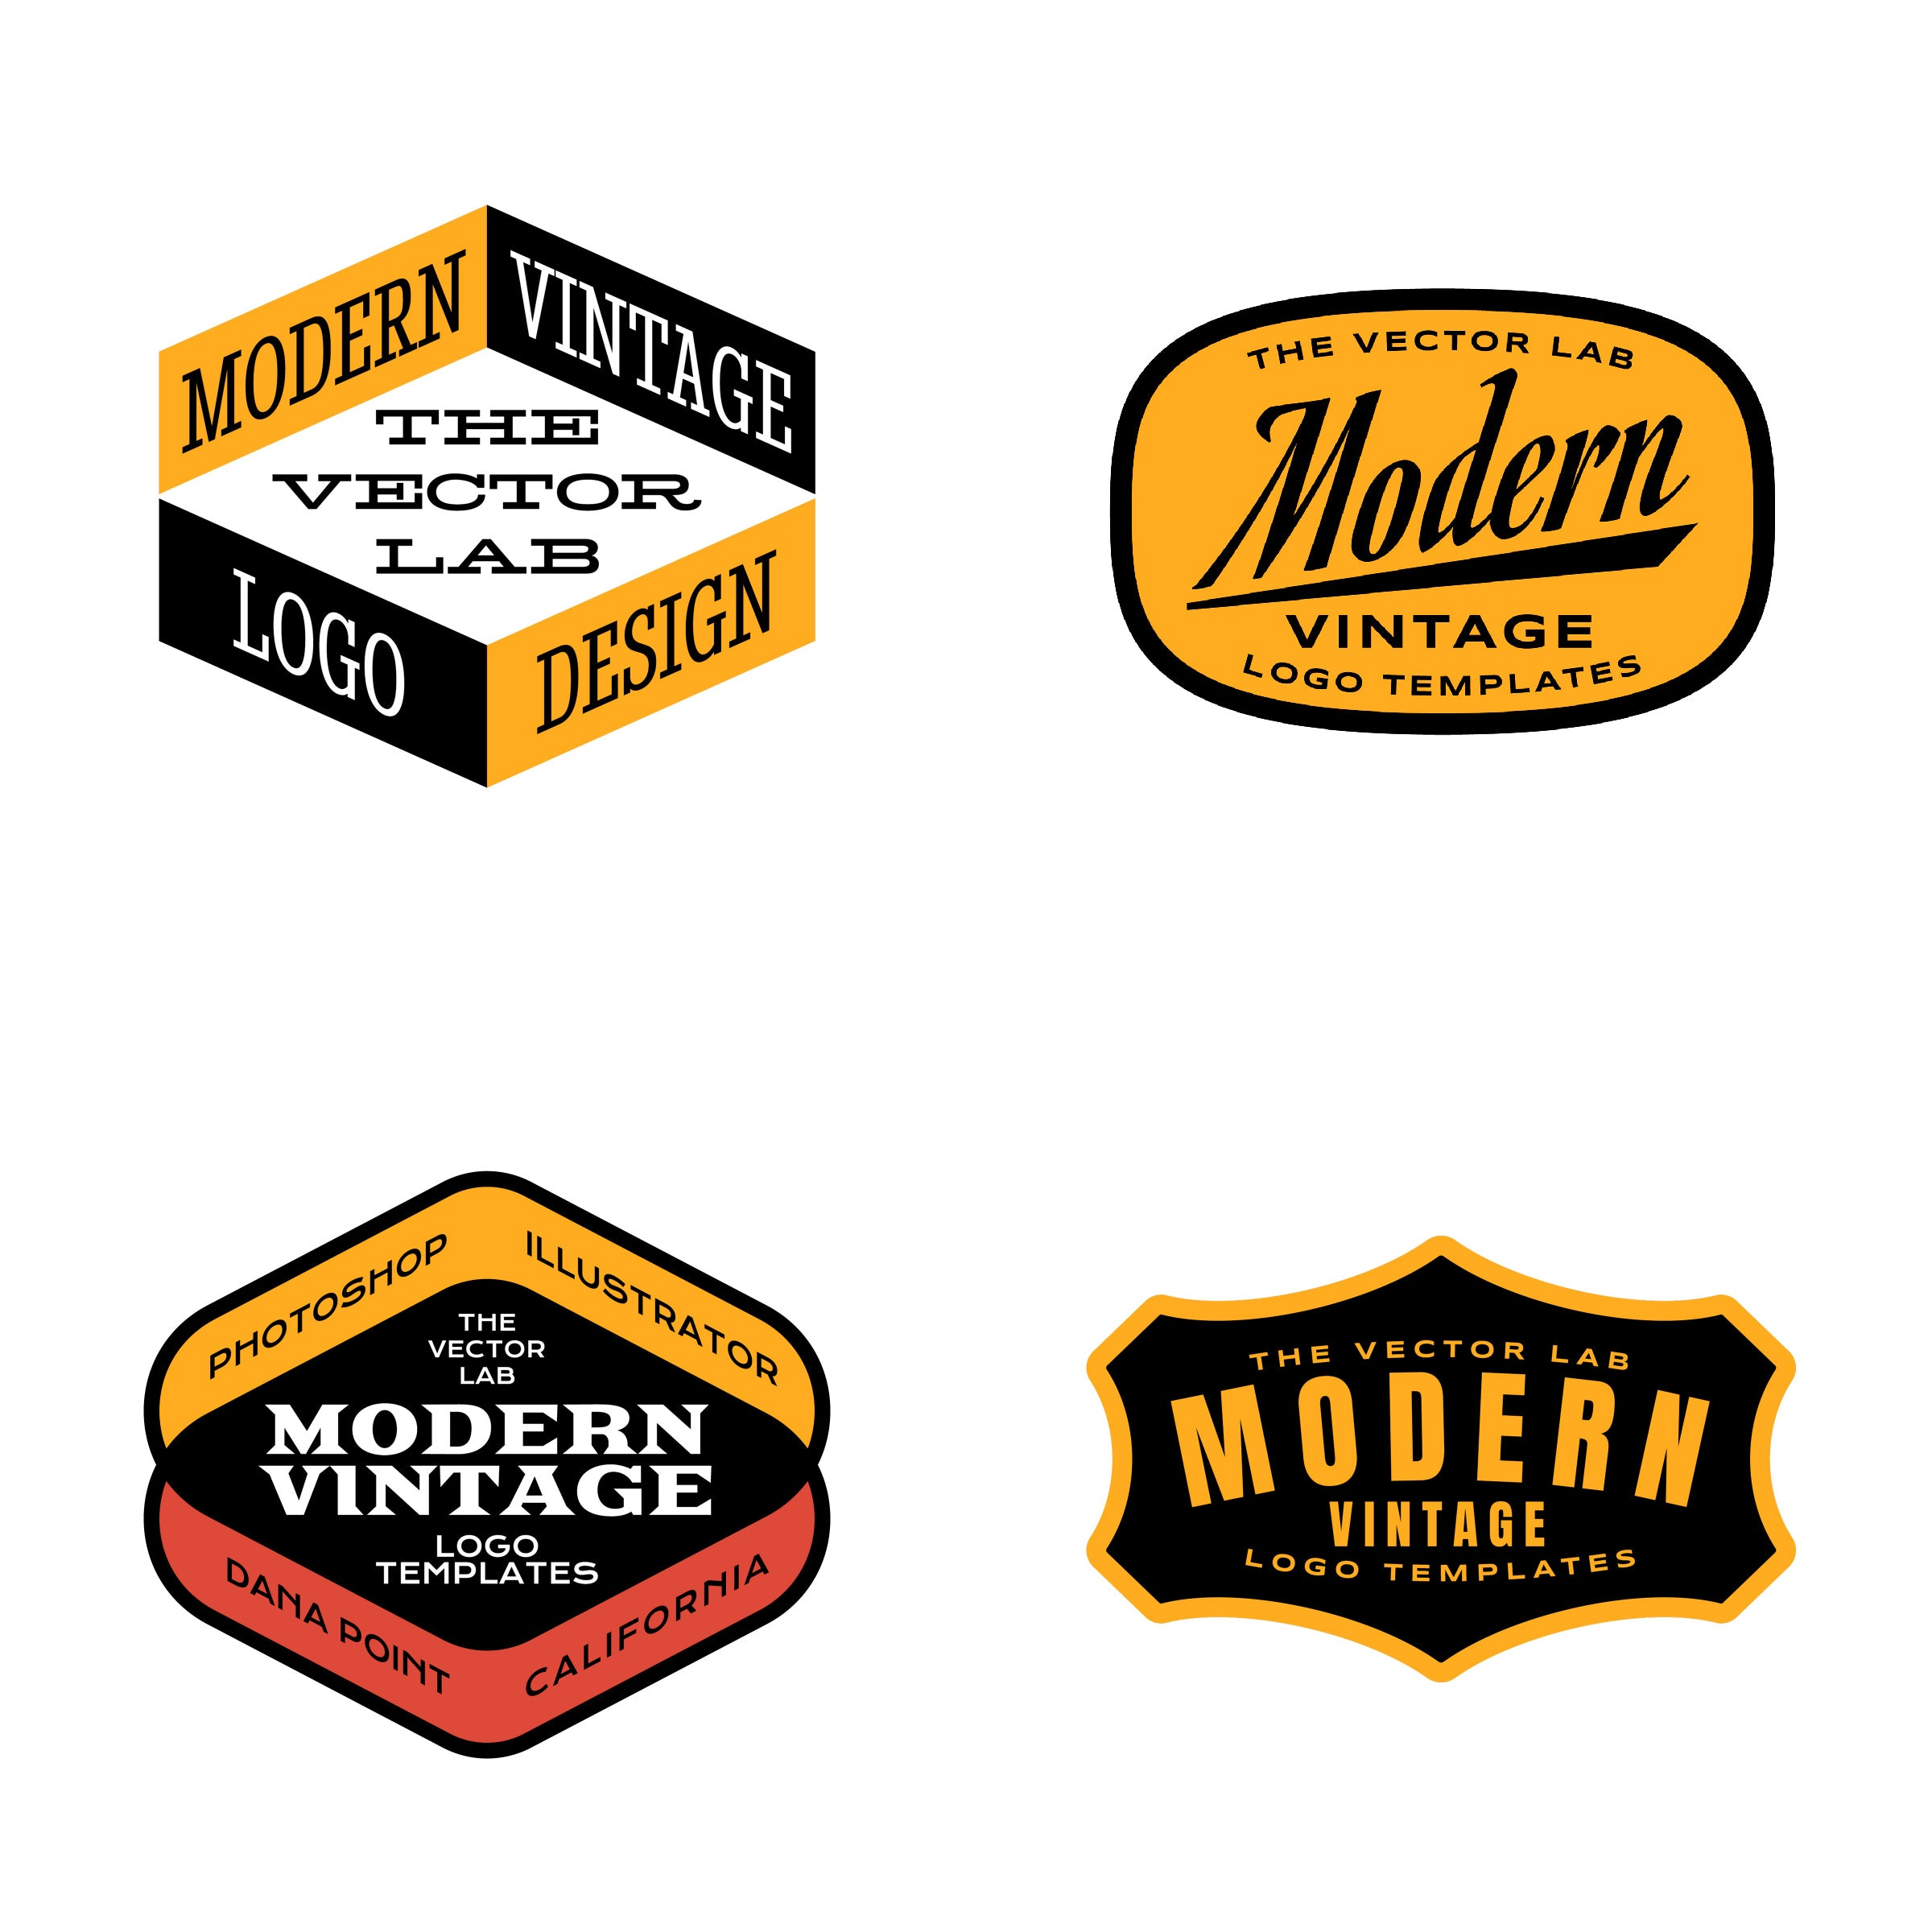 Modern vintage logo design master collection